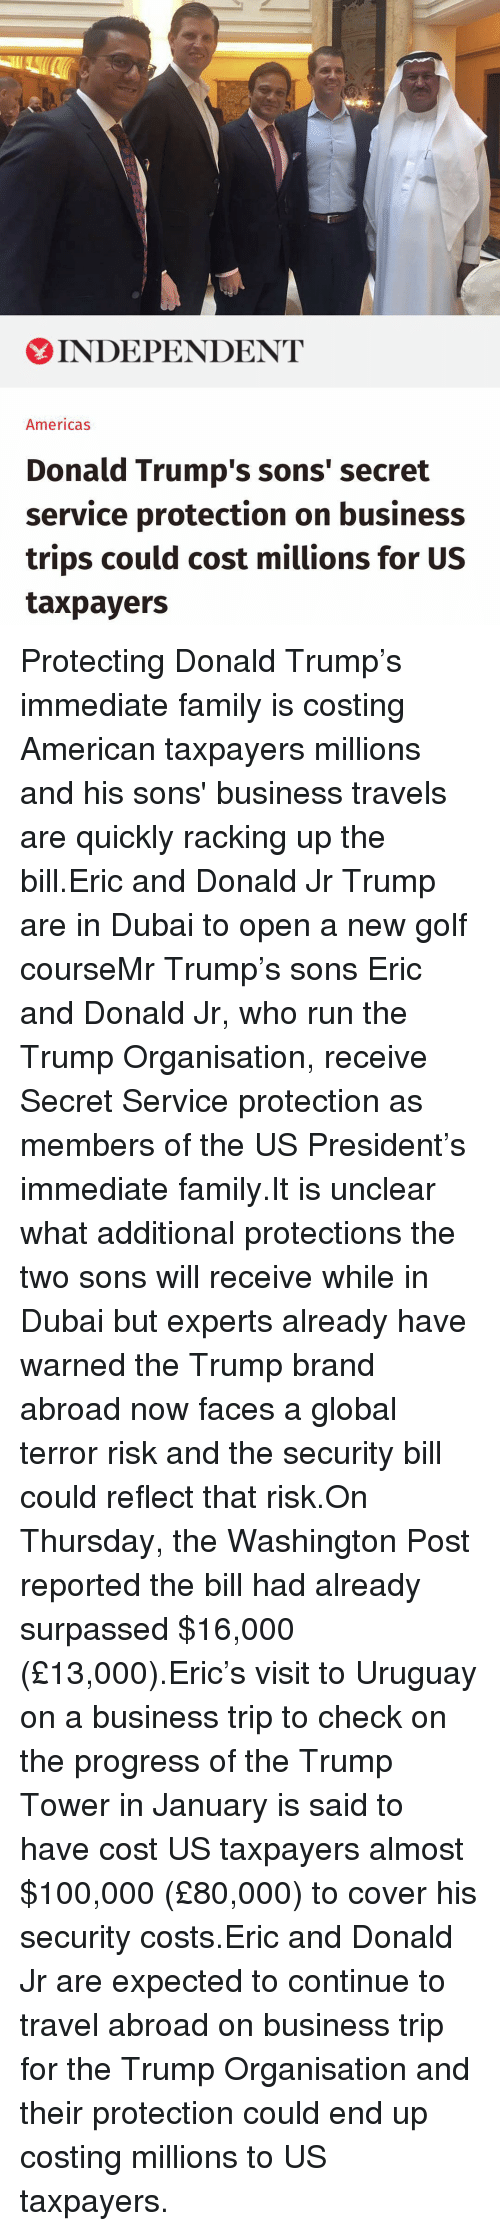 Eric Trump S Business Travel To Uruguay